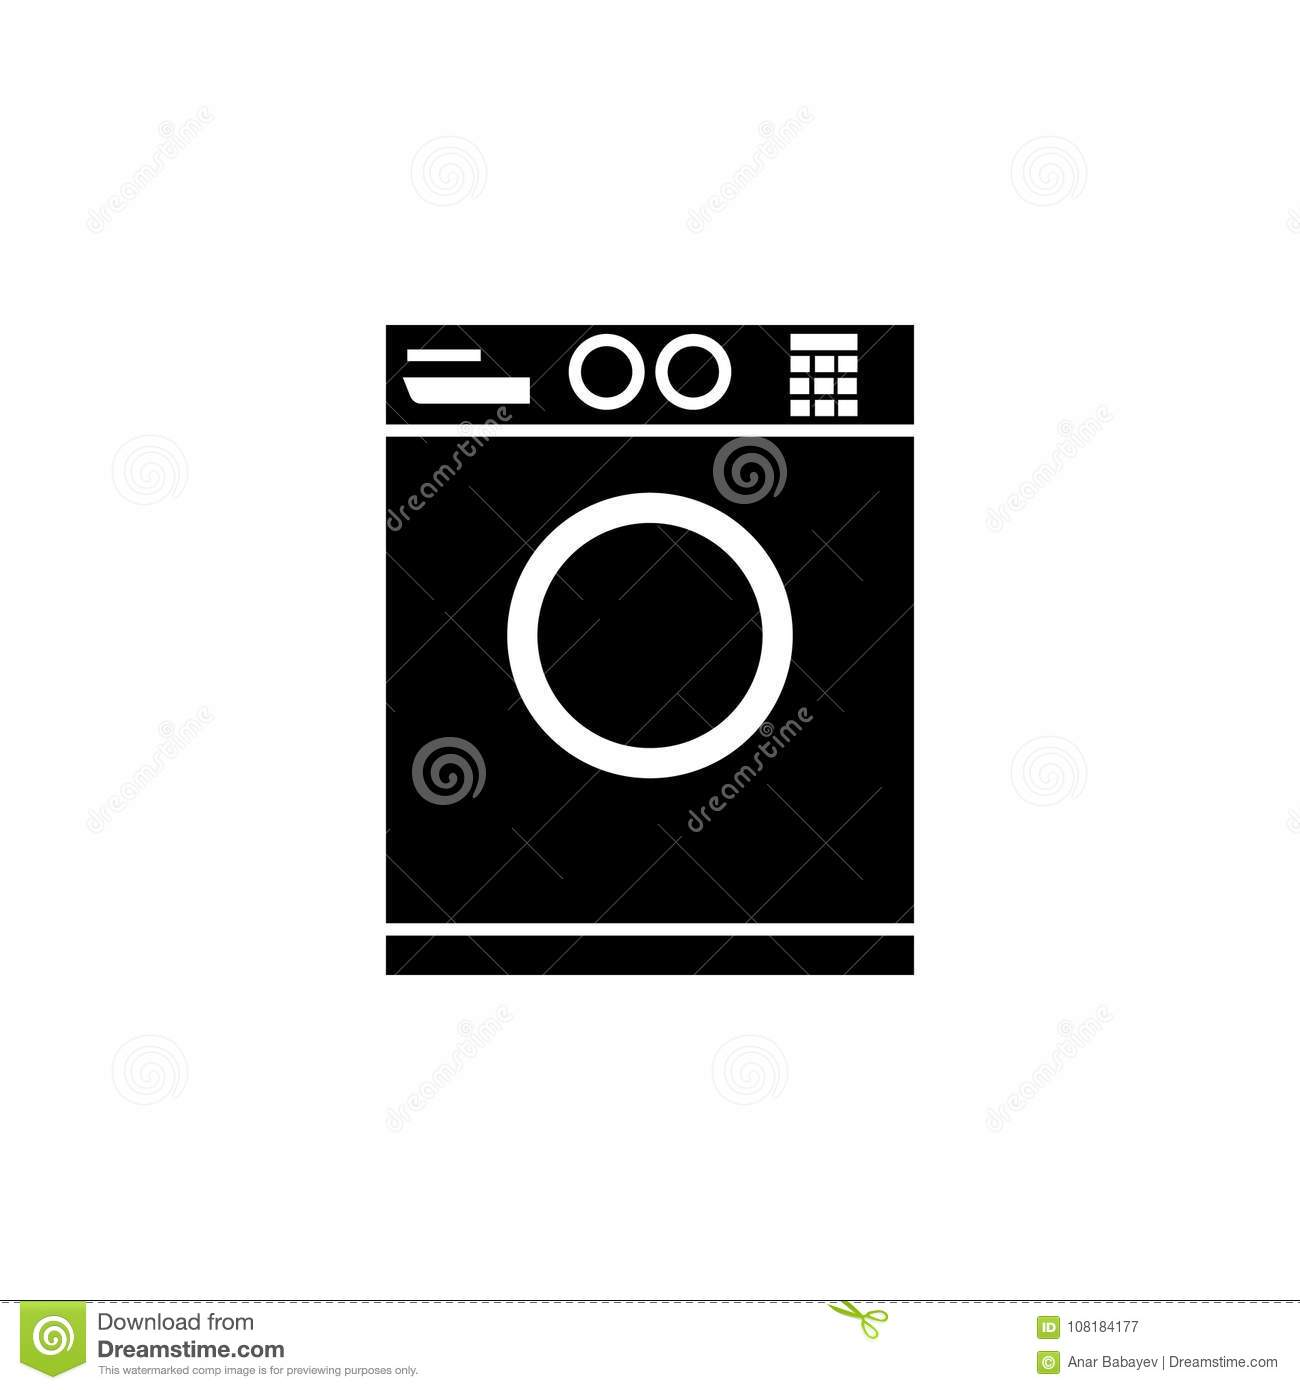 b21b8af25 Washing machine icon. Bathroom and sauna element icon. Premium quality  graphic design. Signs, outline symbols collection icon for websites, web  design, ...